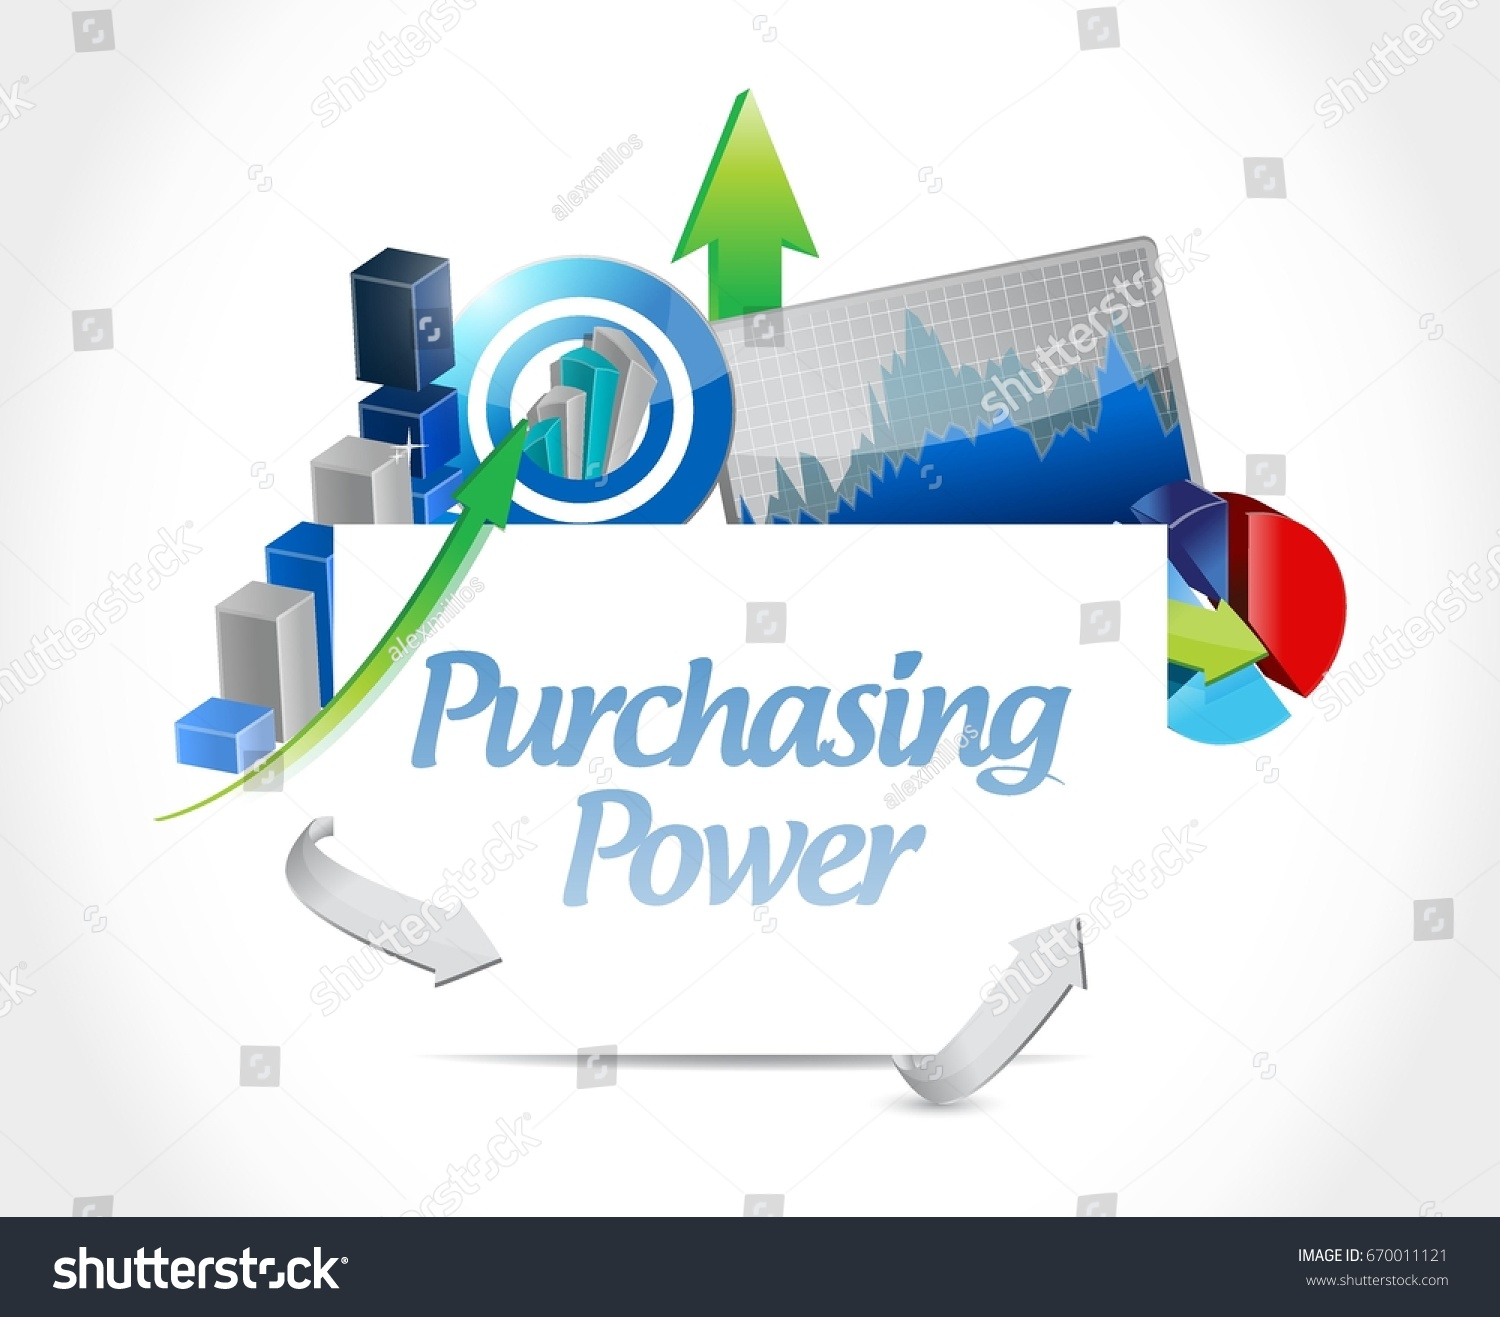 stock-vector-purchasing-power-business-chart-icon-illustration-design-isolated-over-white-670011121